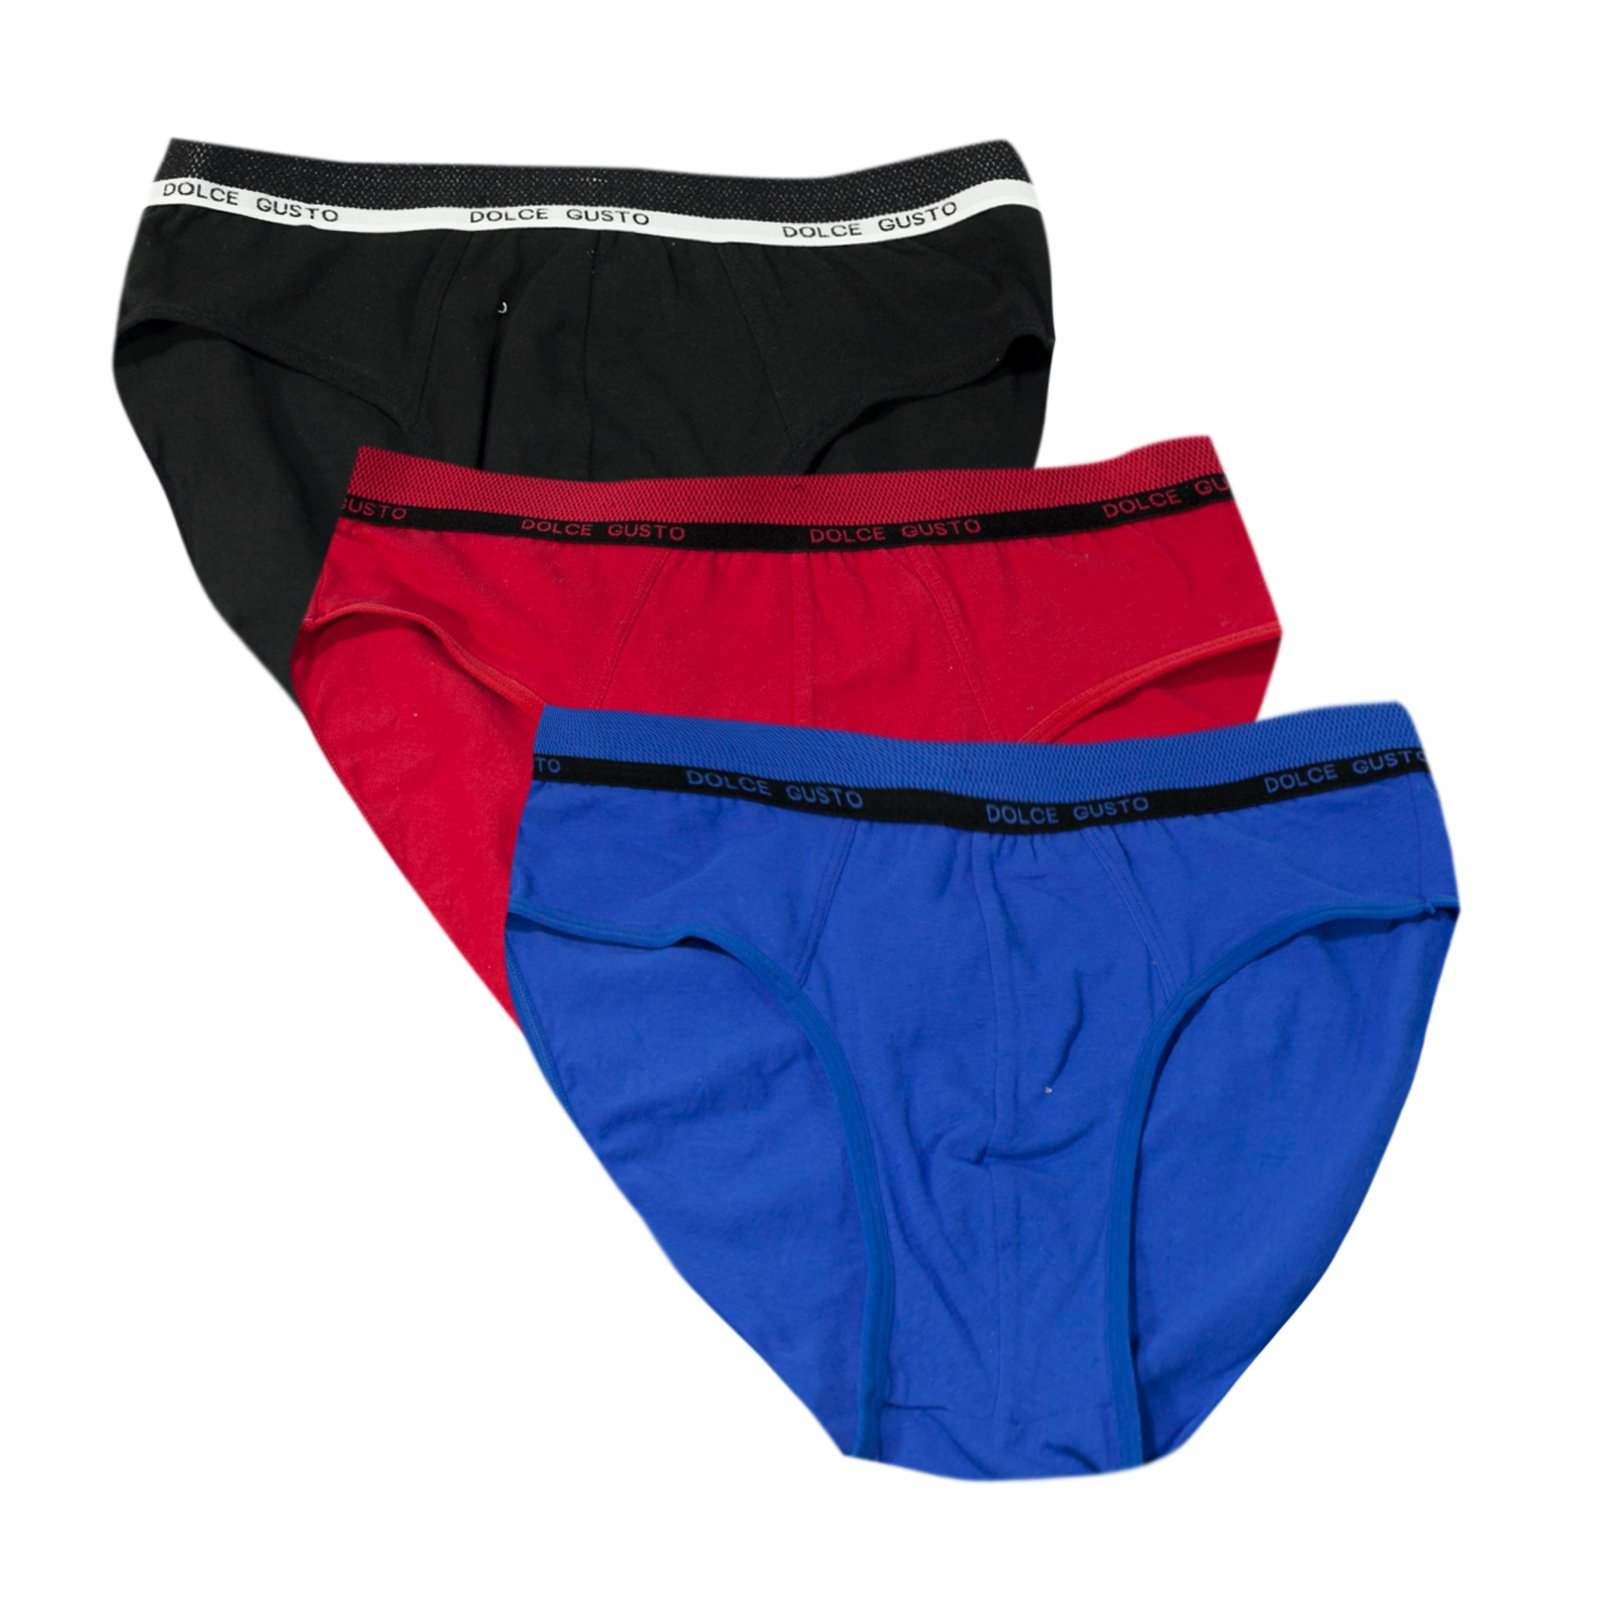 Dolce Gusto Men's Boxers Brief 3-Pack - XXXL by Love Hana (Image #3)